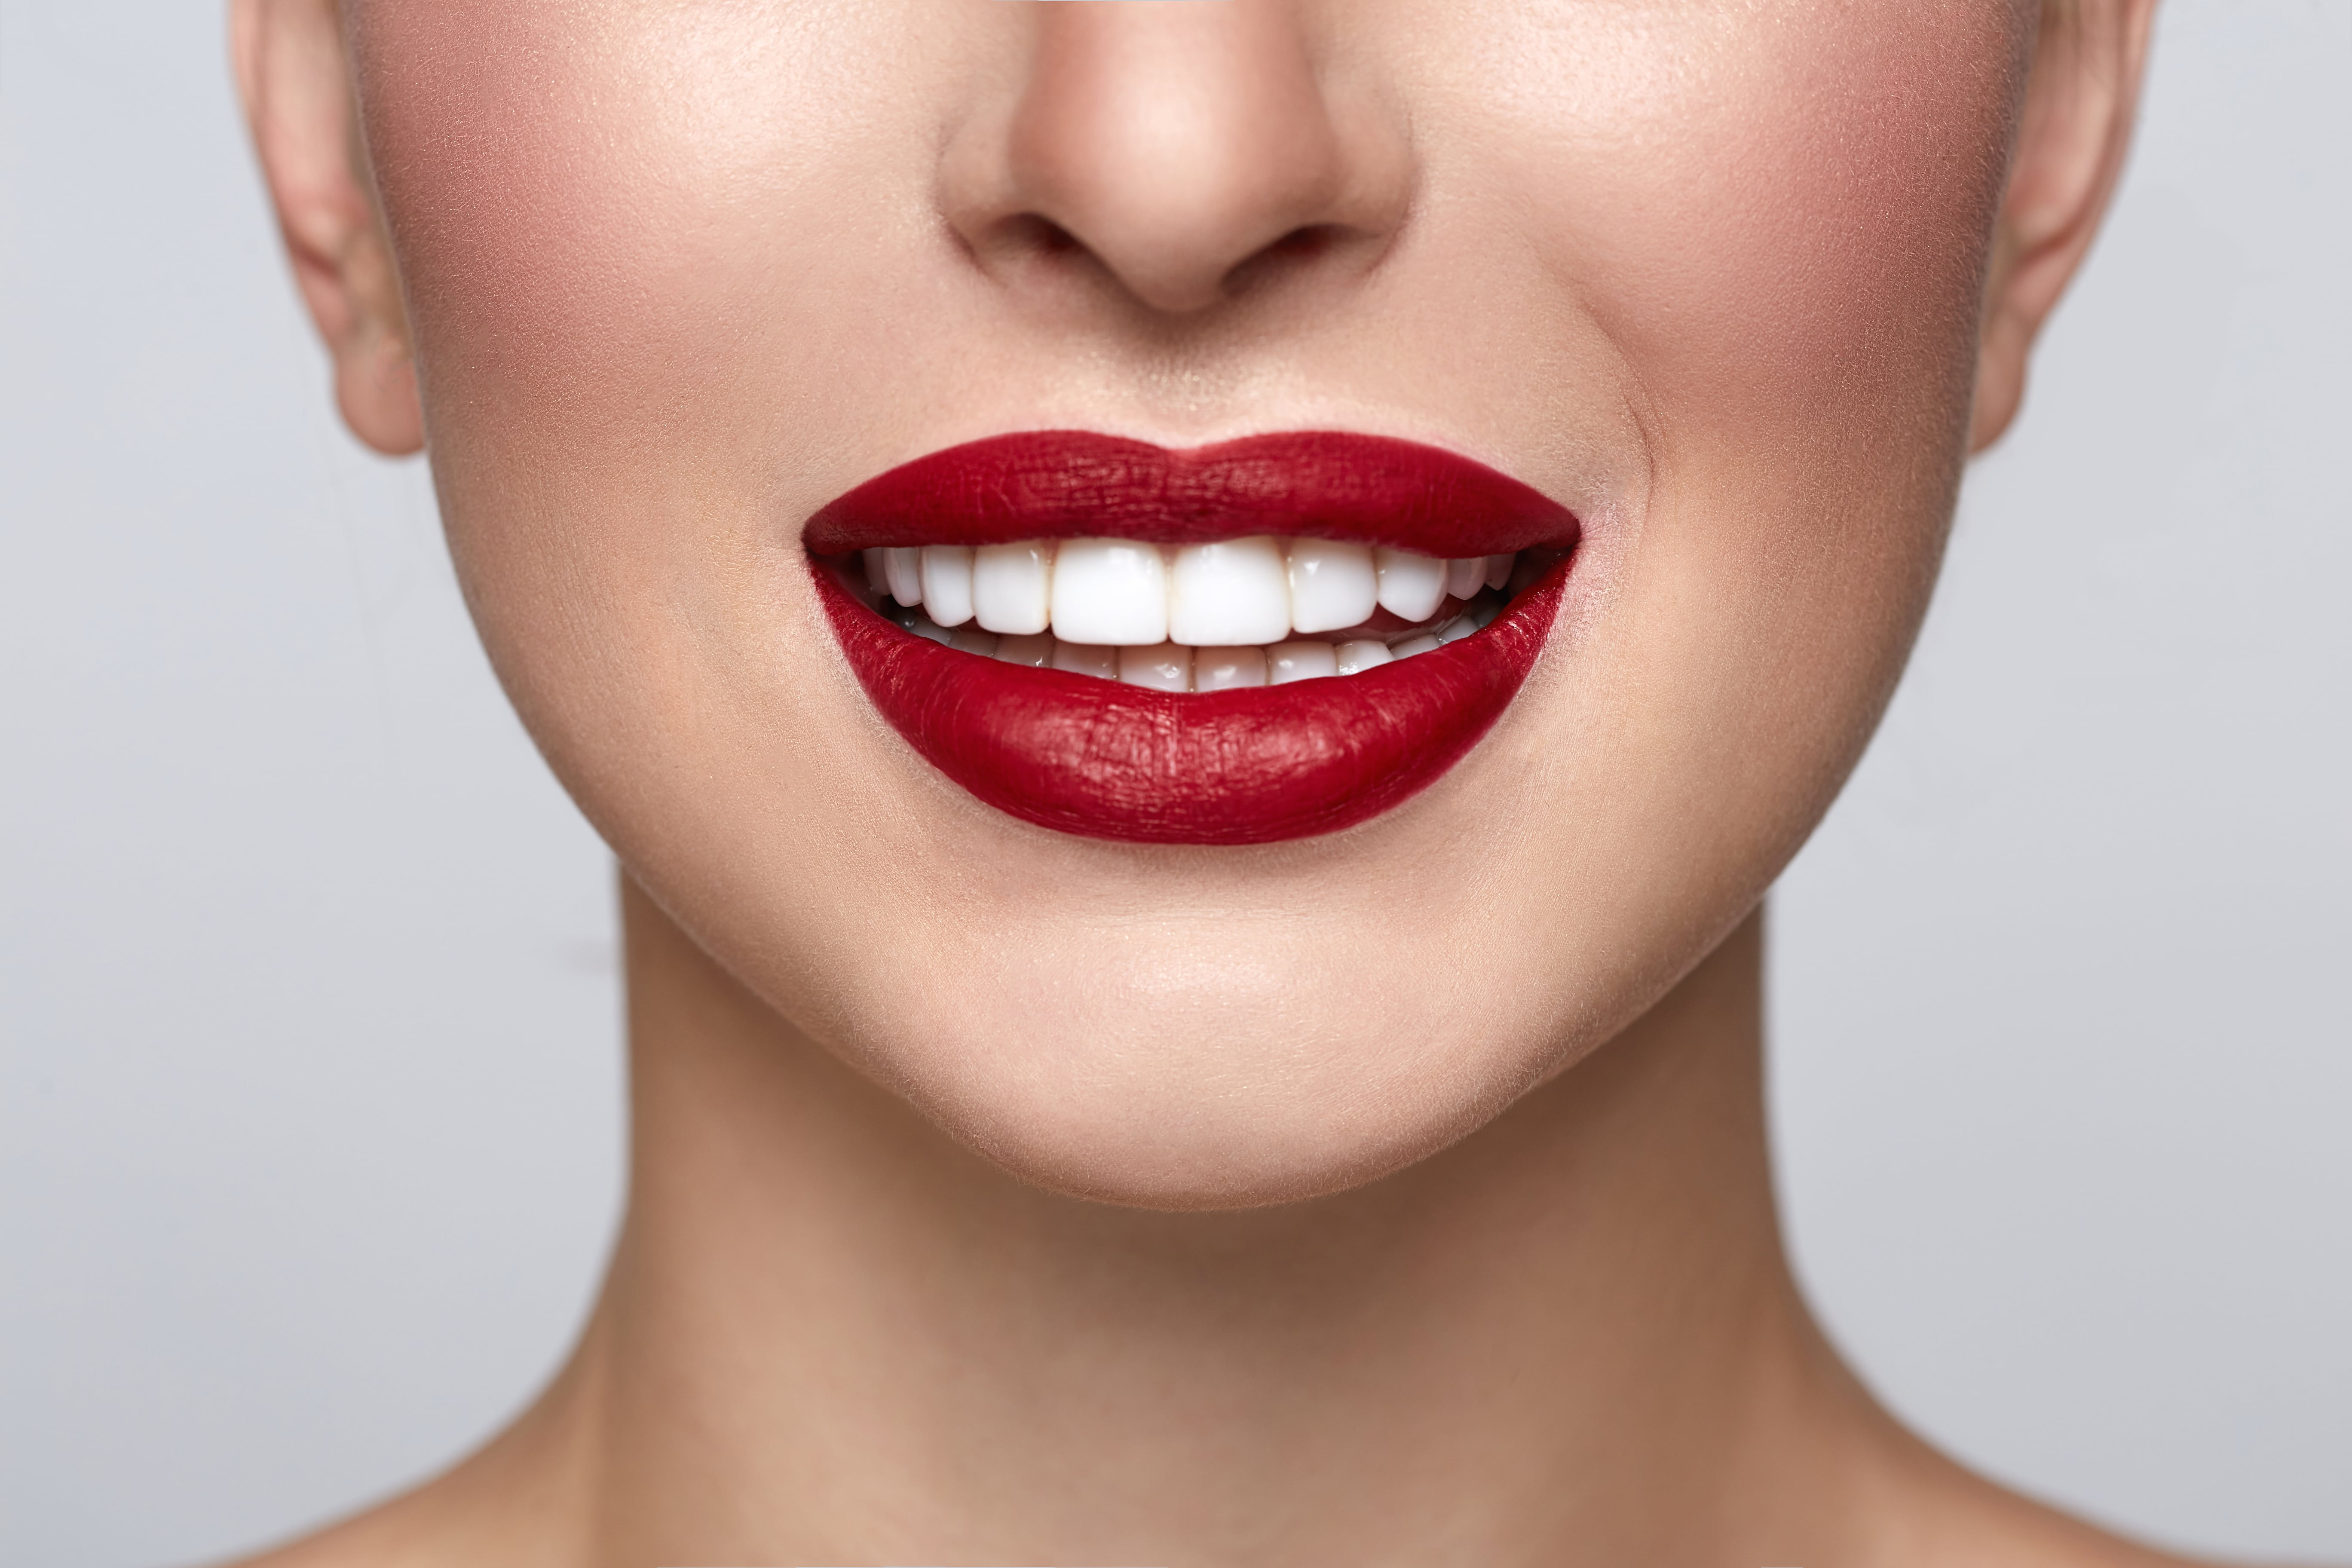 Lower half of a woman's smiling face with white teeth and red lipstick